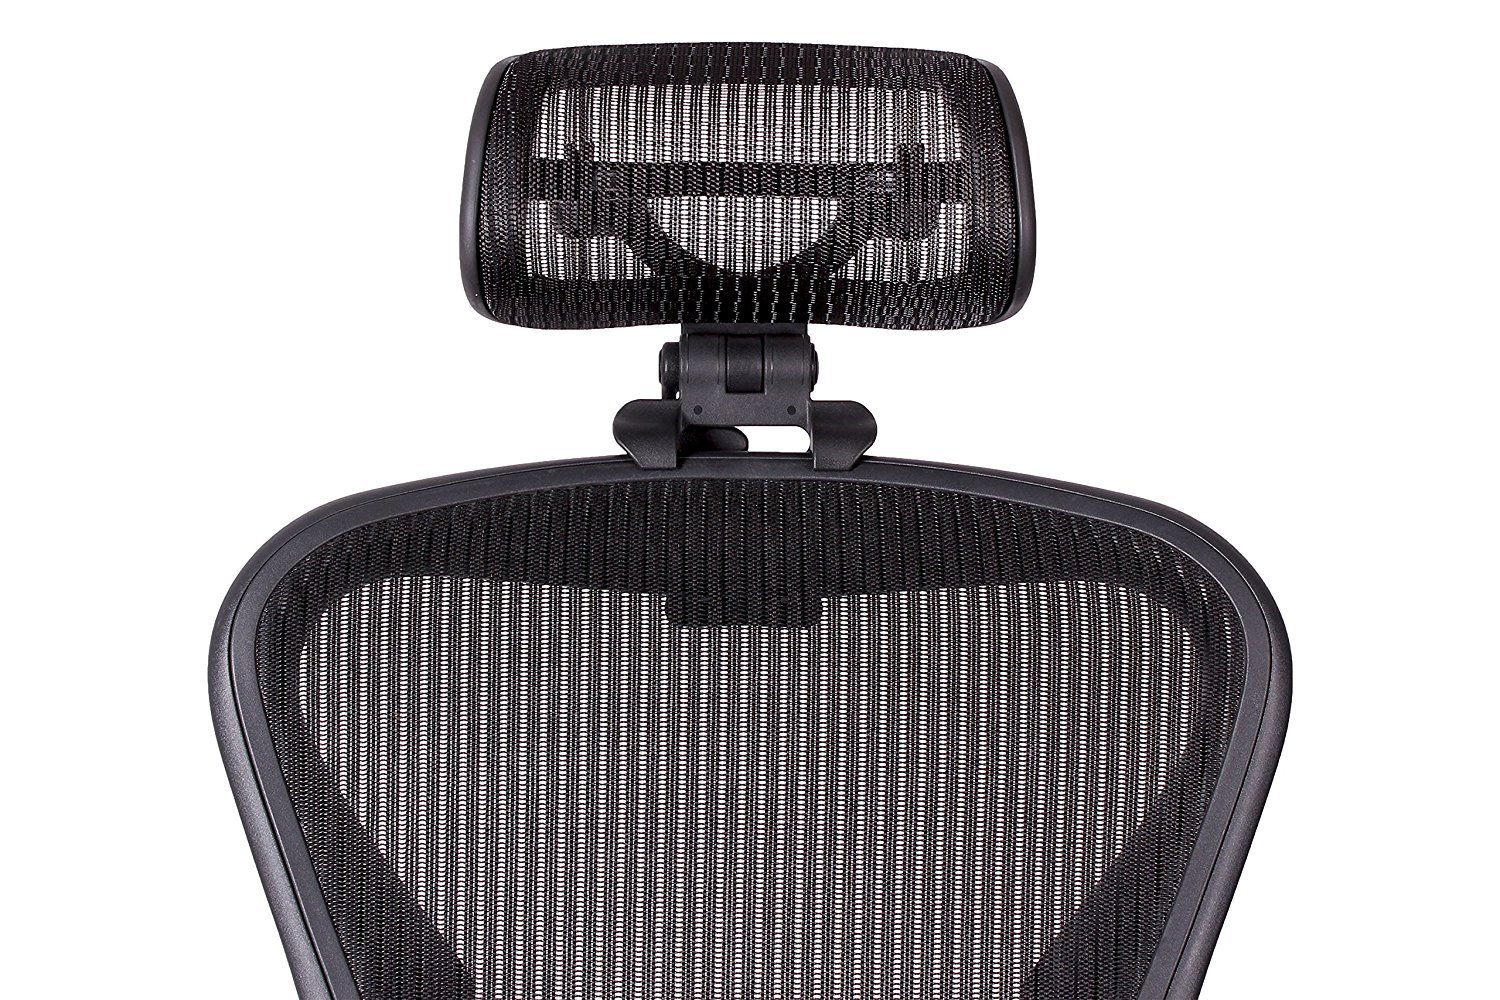 Quick Attach Ergonomic Posture Corrector Enjoy Adjustable Headrest Compatible for Herman Miller Aeron Series Office Chairs Improves Neck Alignment and Seated Comfort